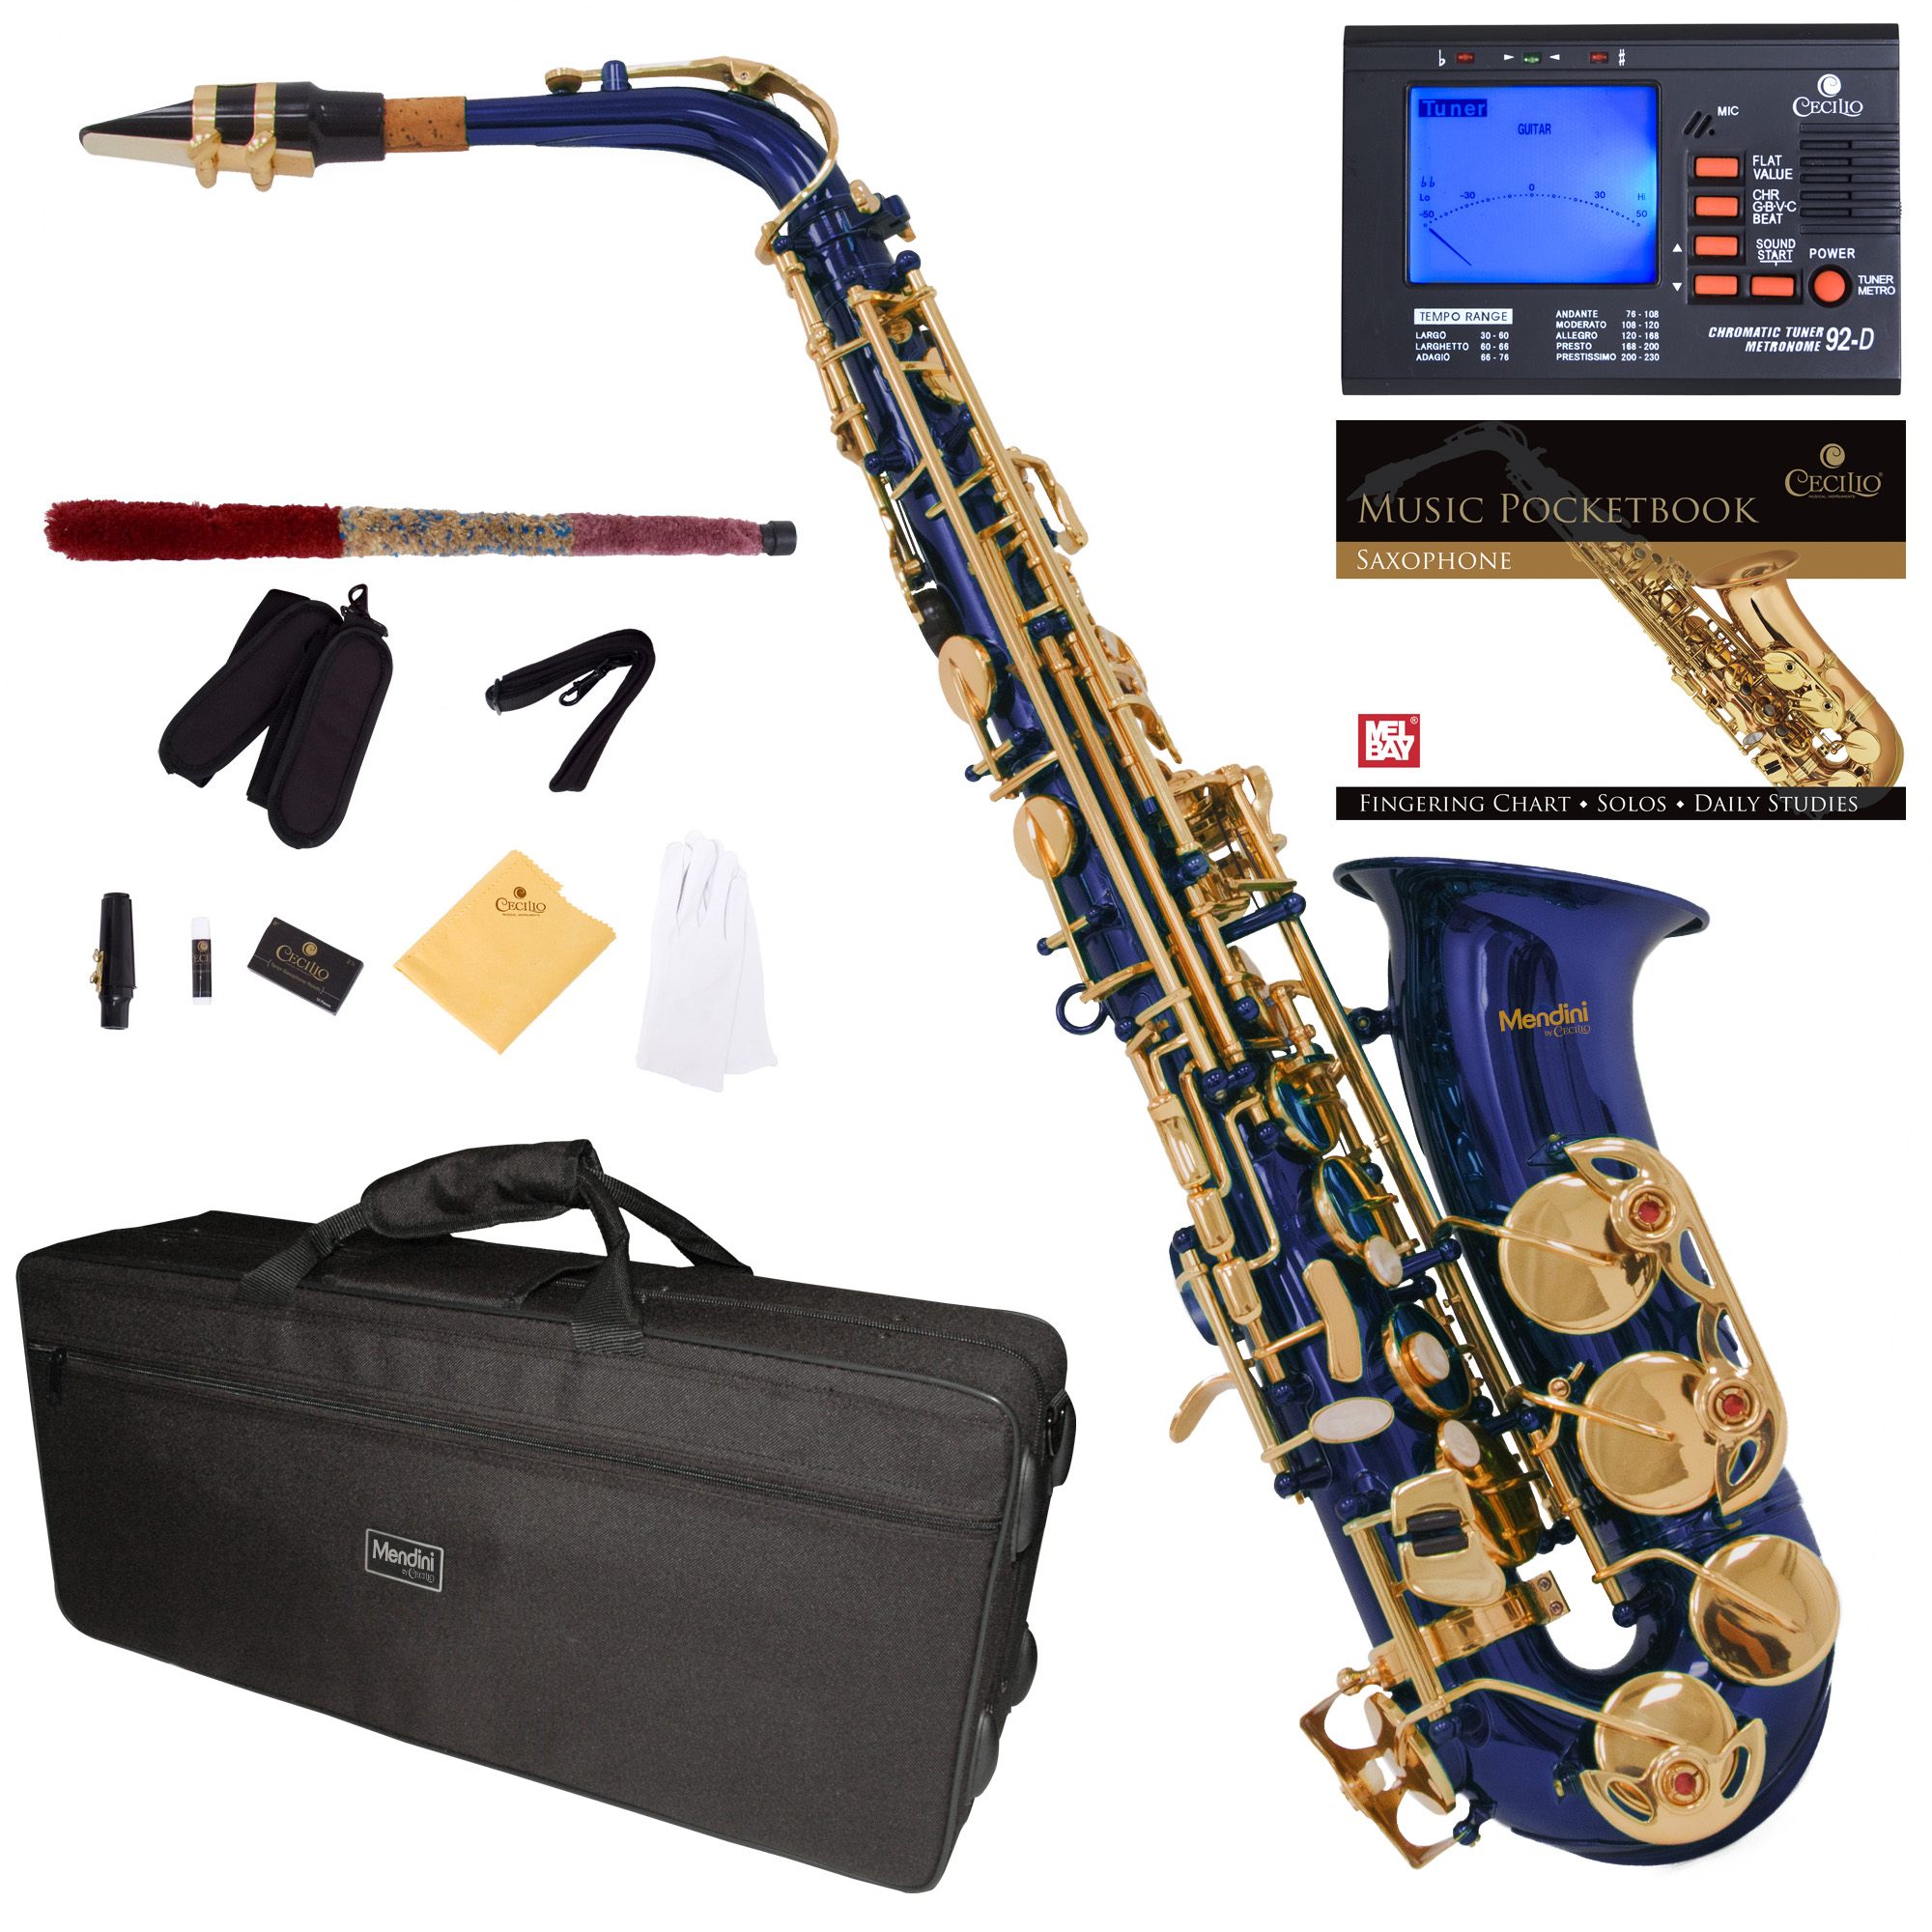 Mendini by Cecilio Eb Alto Sax w Tuner, Case, Mouthpiece, 10 Reeds, Pocketbook and 1 Year... by Cecilio Musical Instruments